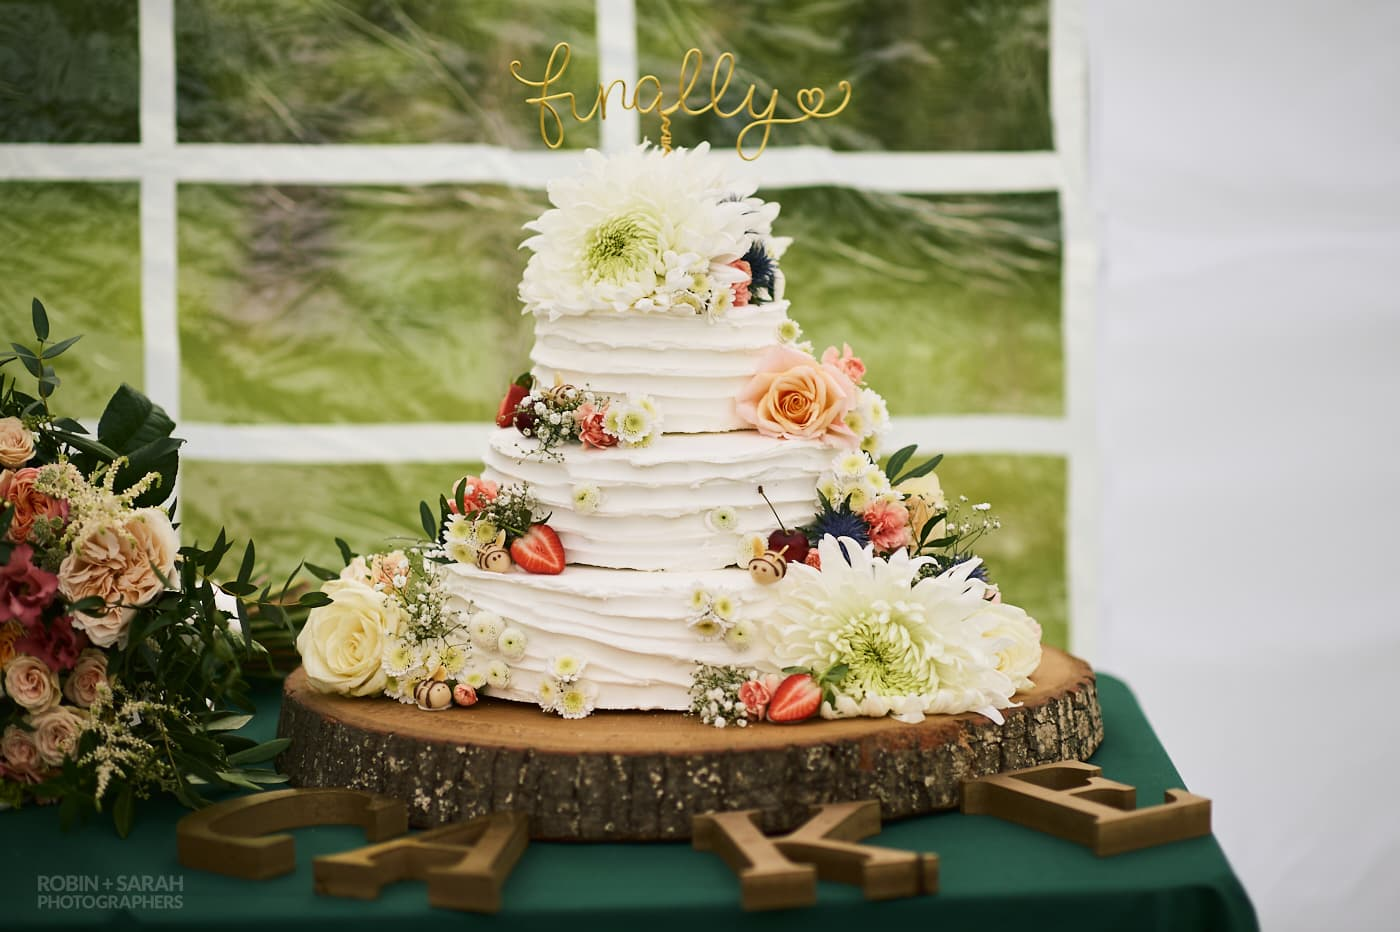 Home made wedding cake decorated with garden flowers